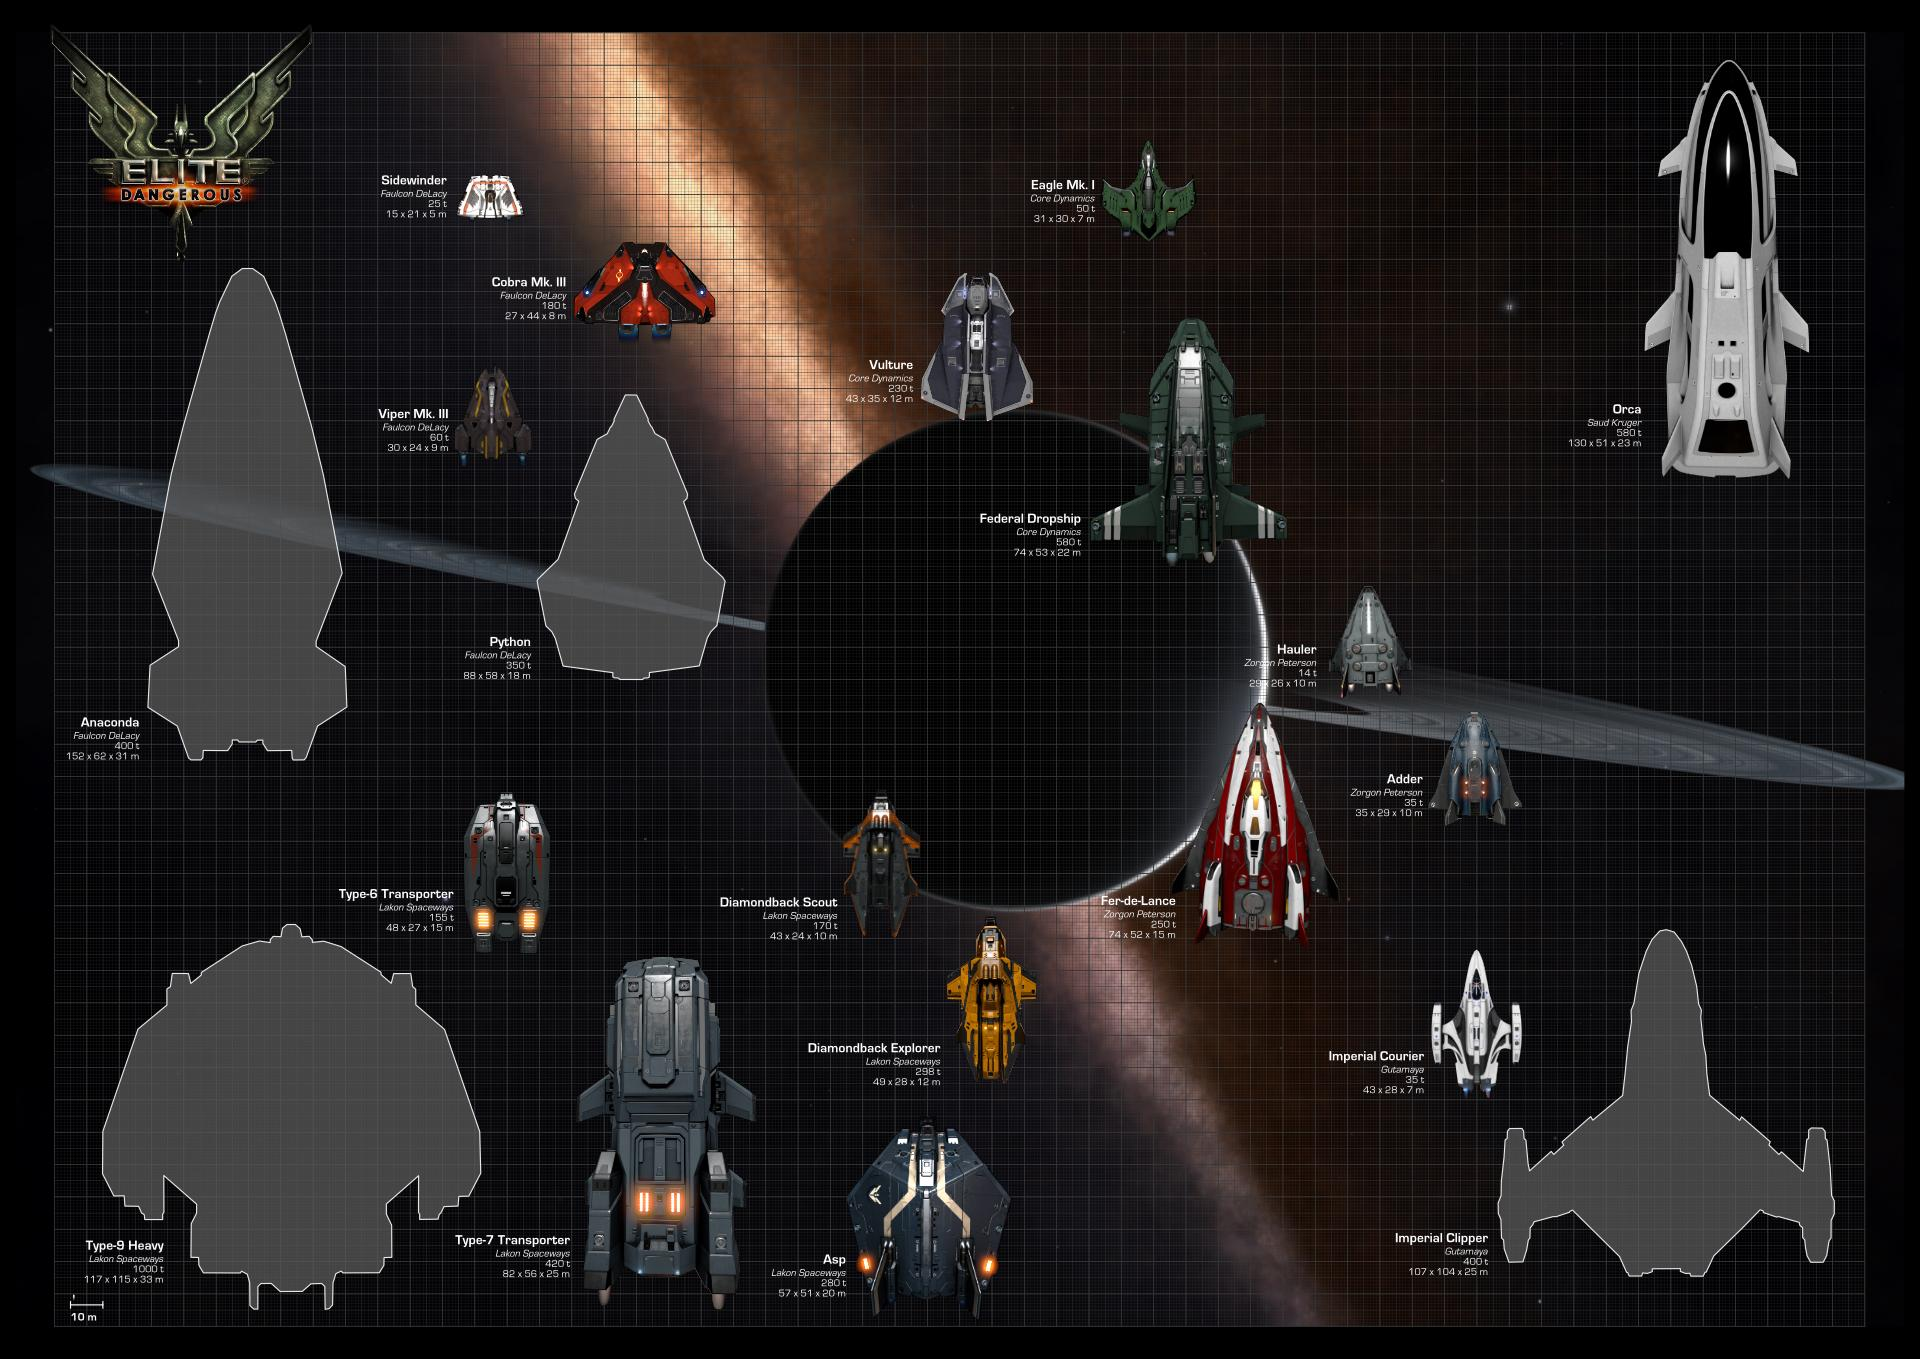 Elite: Dangerous - Ship/Size Comparison